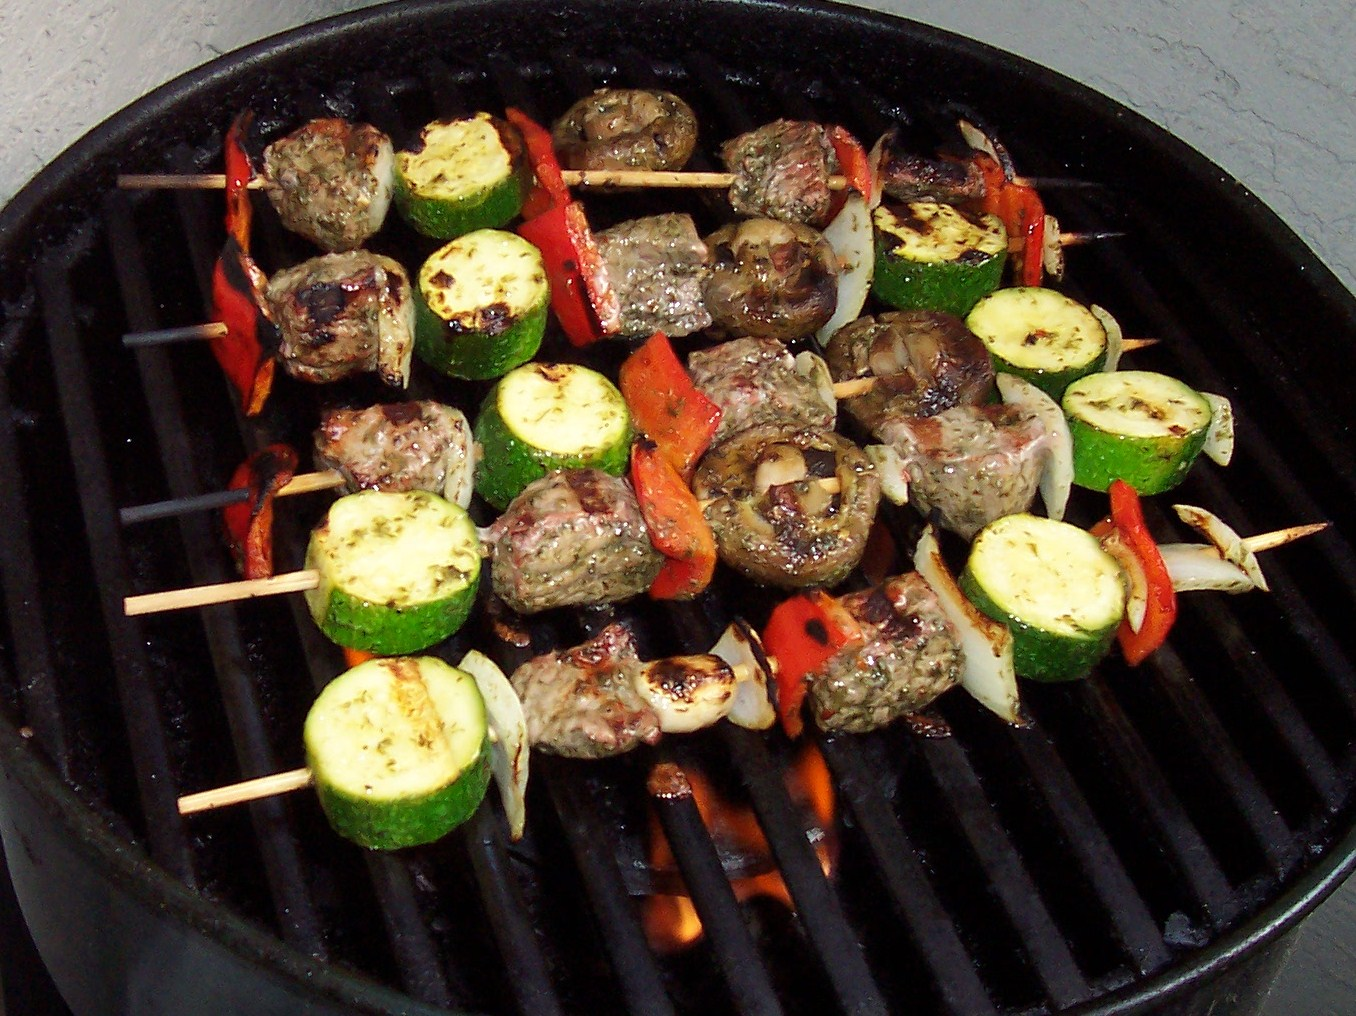 ... KABOB's are made with Beef that was marinated in a Chimichurri Sauce